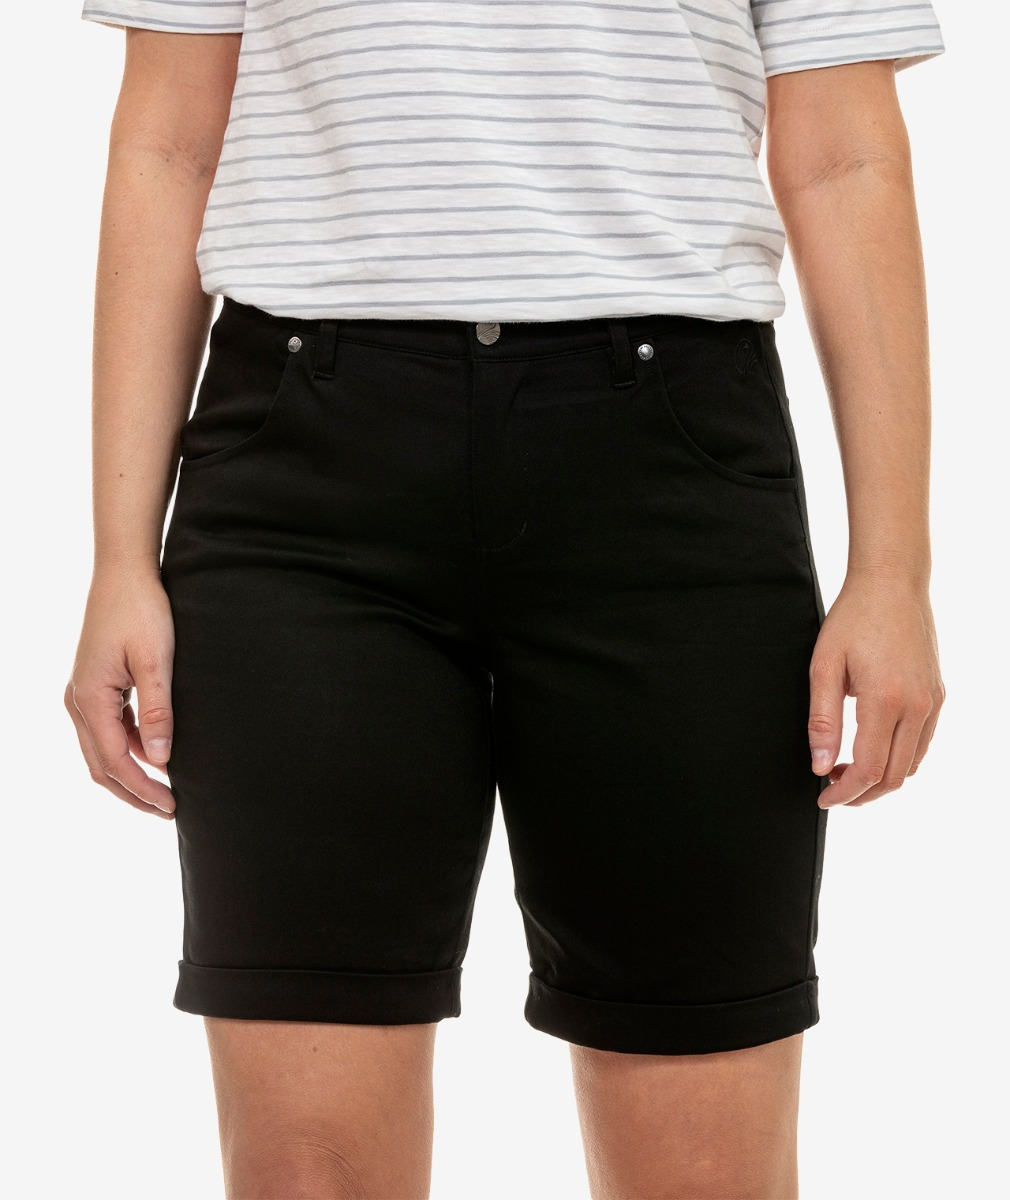 Swanndri Women's Waverley Super Stretch Short